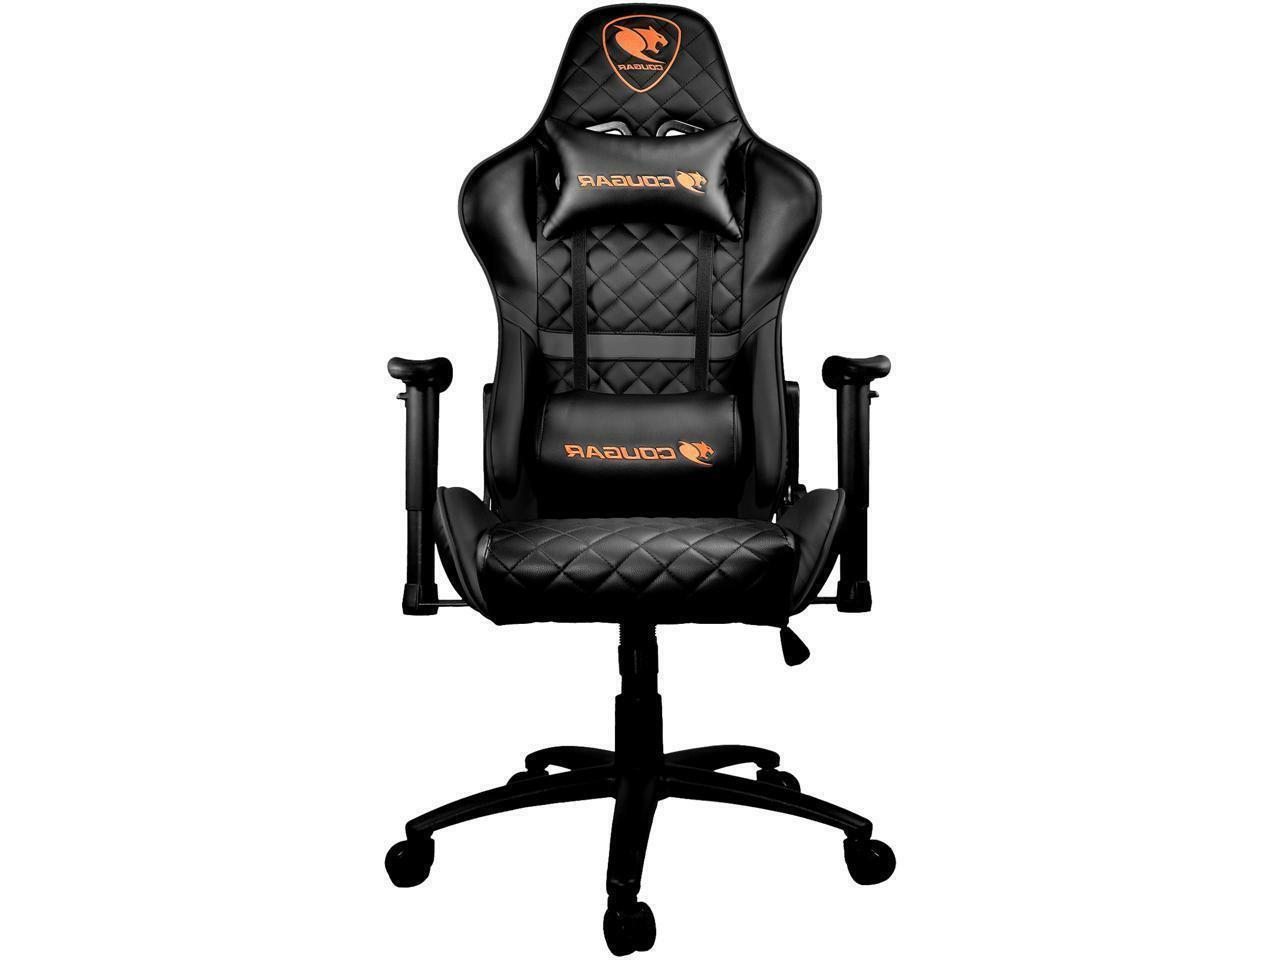 armor one gaming chair